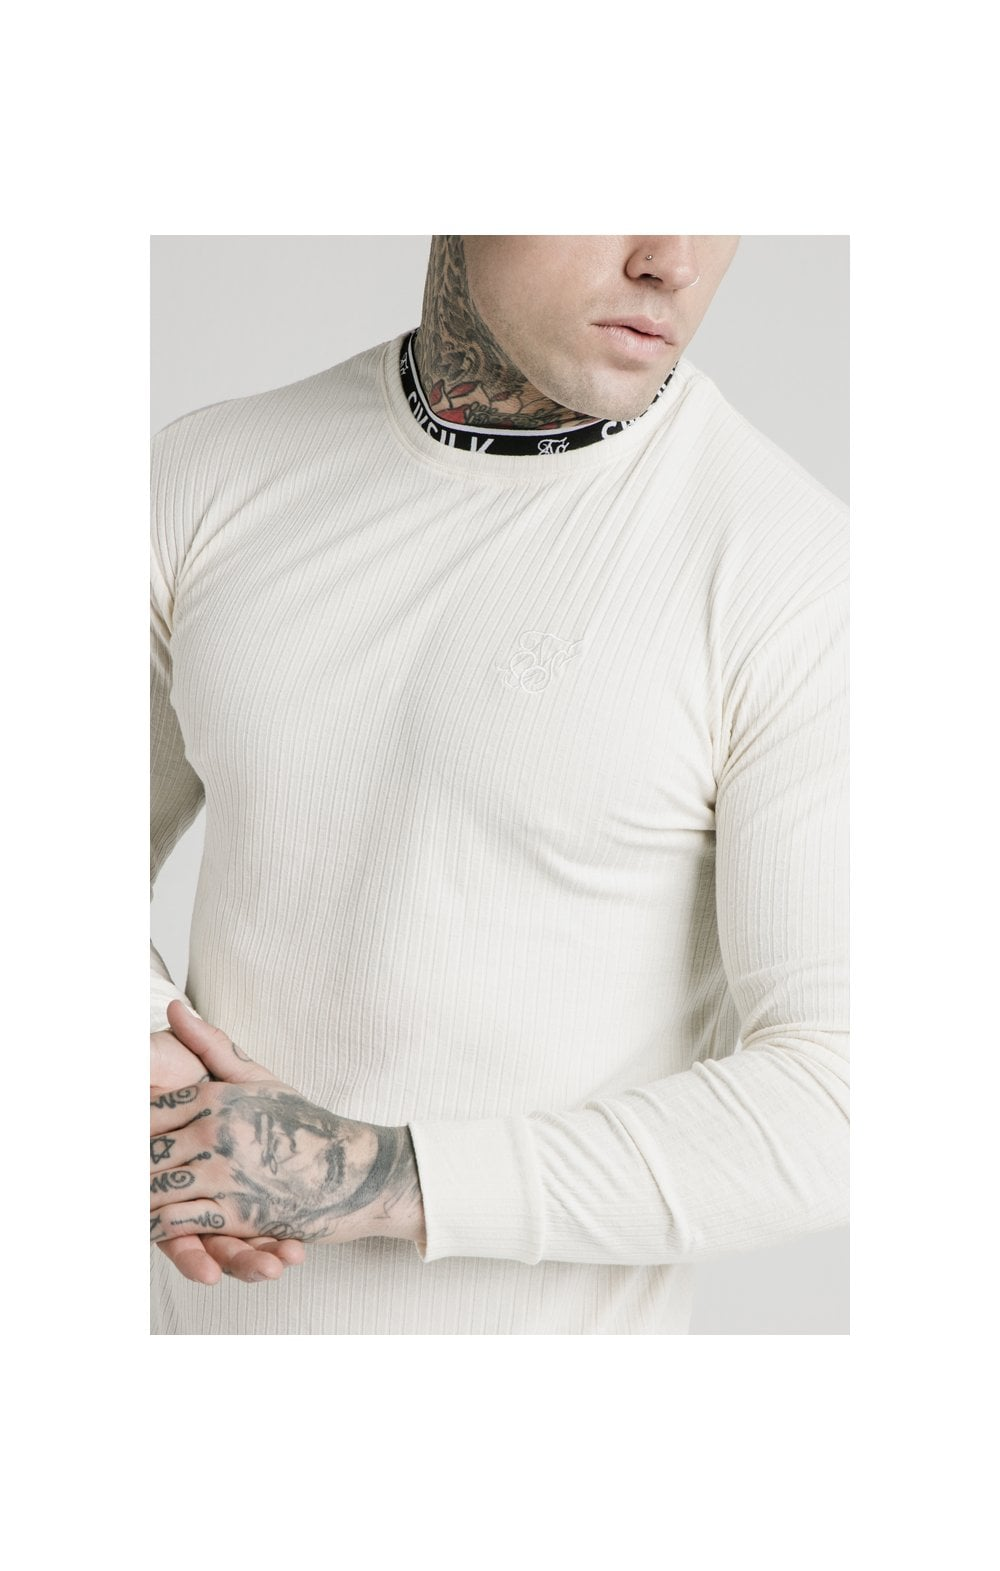 SikSilk L/S Rib Knit Tee - Off White (1)